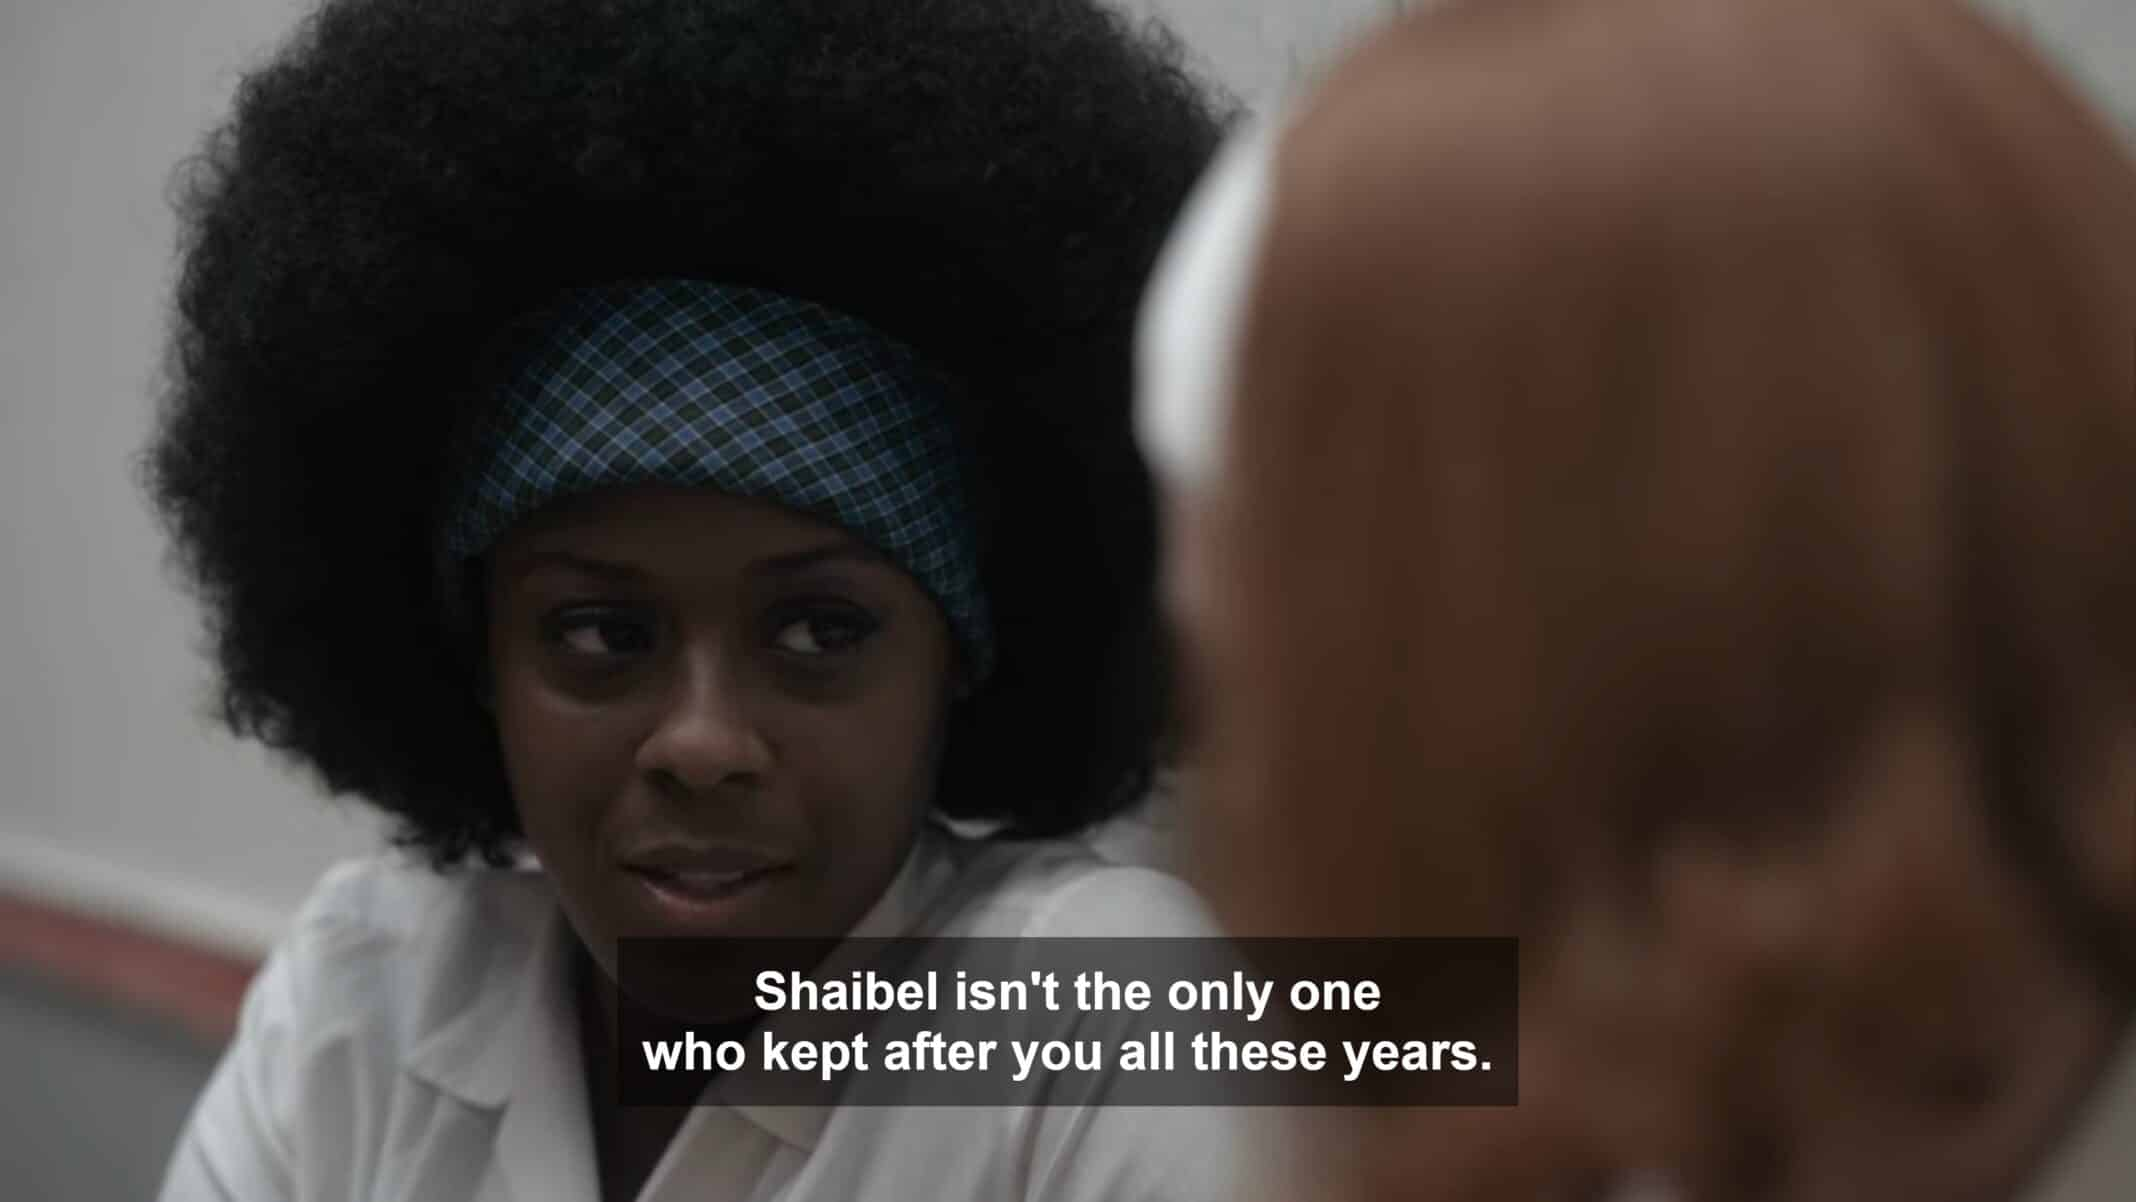 Jolene noting it wasn't just Mr. Shaibel who kept up what was going on in Beth's life